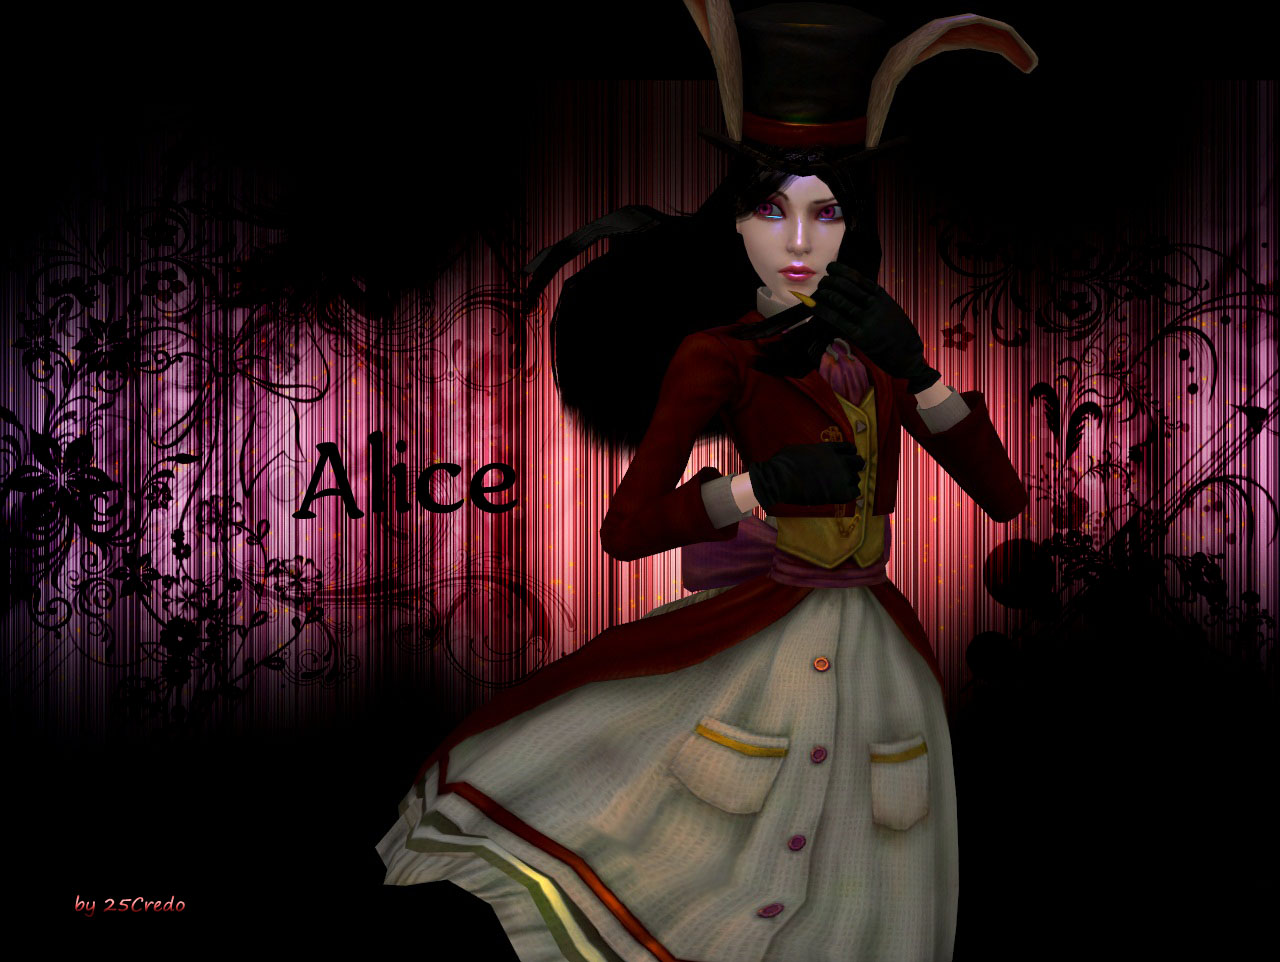 March hare by 25credo on deviantart for March hare wallpaper